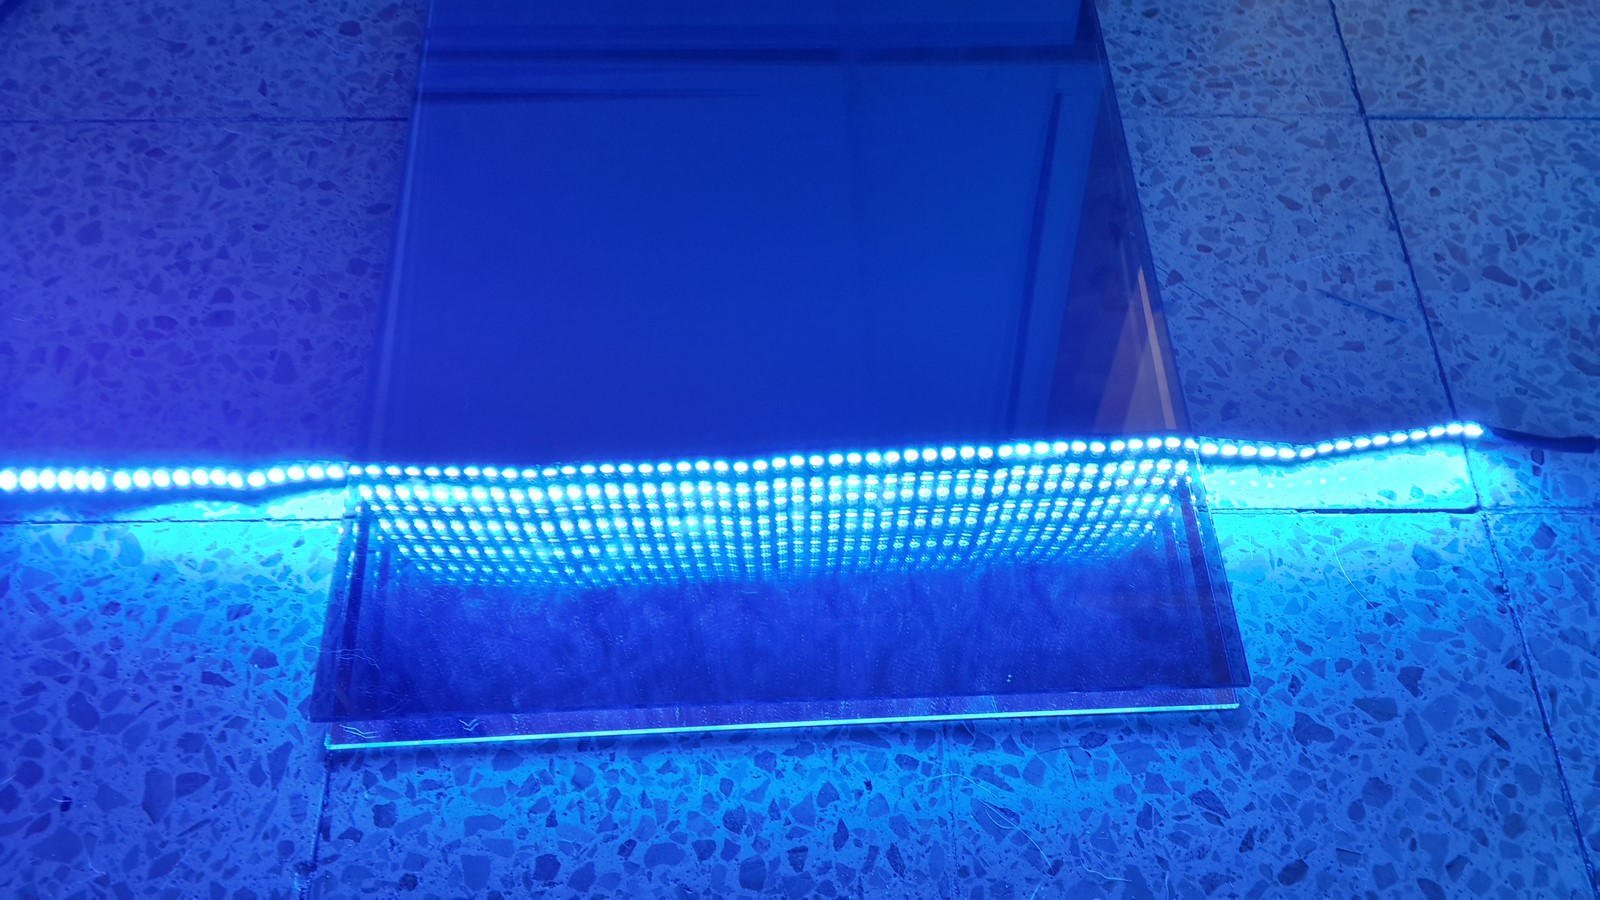 WS2812 Infinity mirror